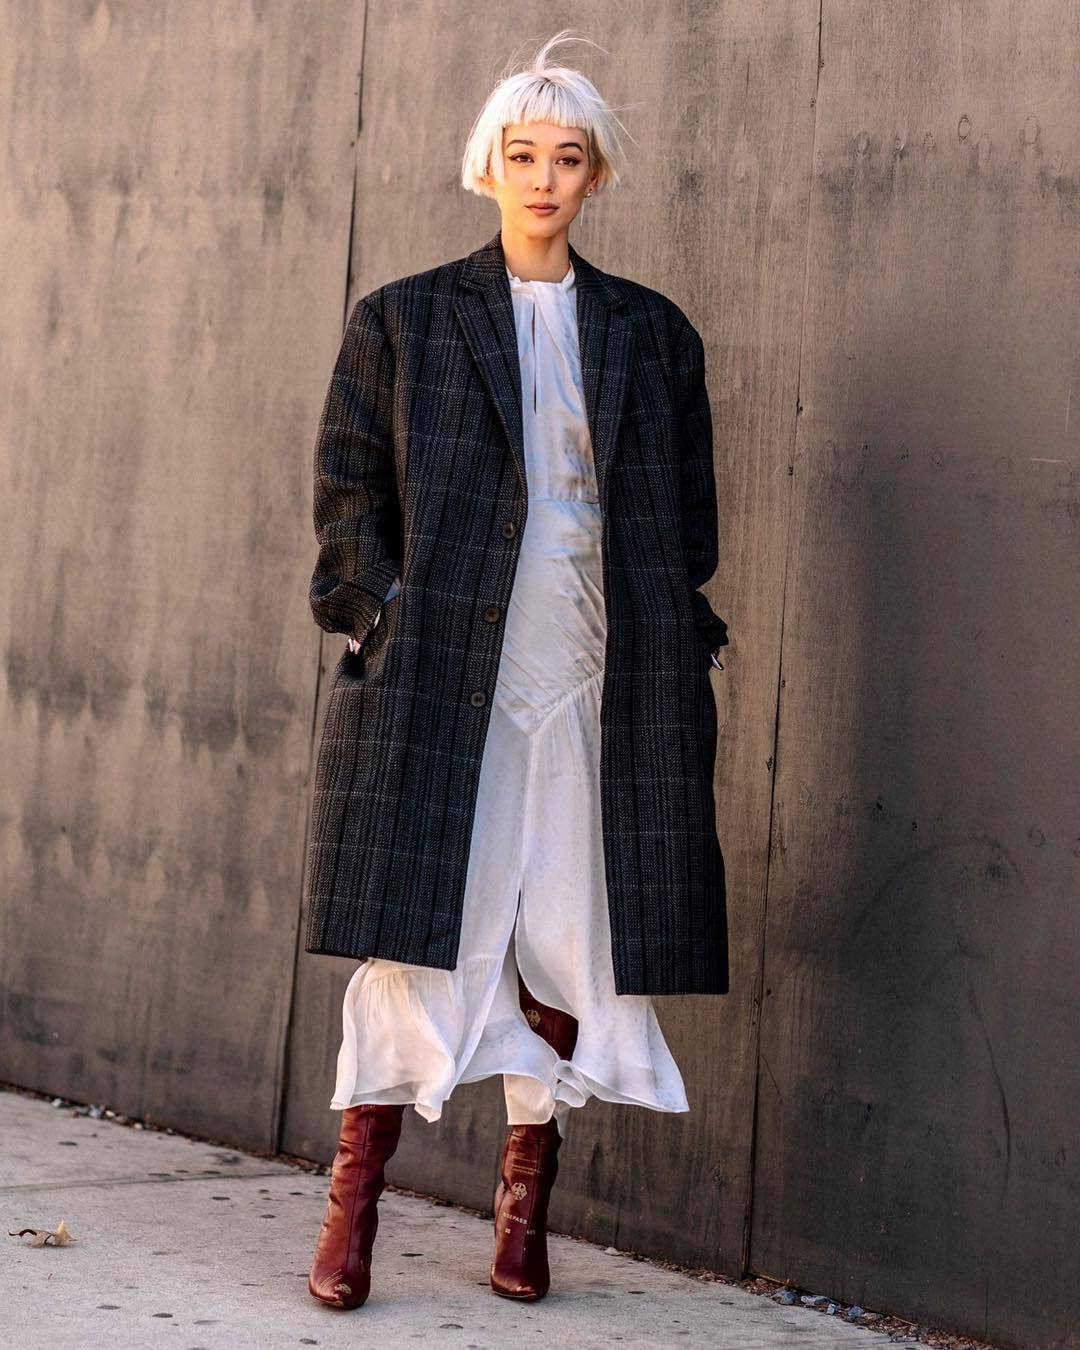 dress maxi dress self portrait white dress long sleeve dress knee high boots heel boots red boots plaid oversized coat